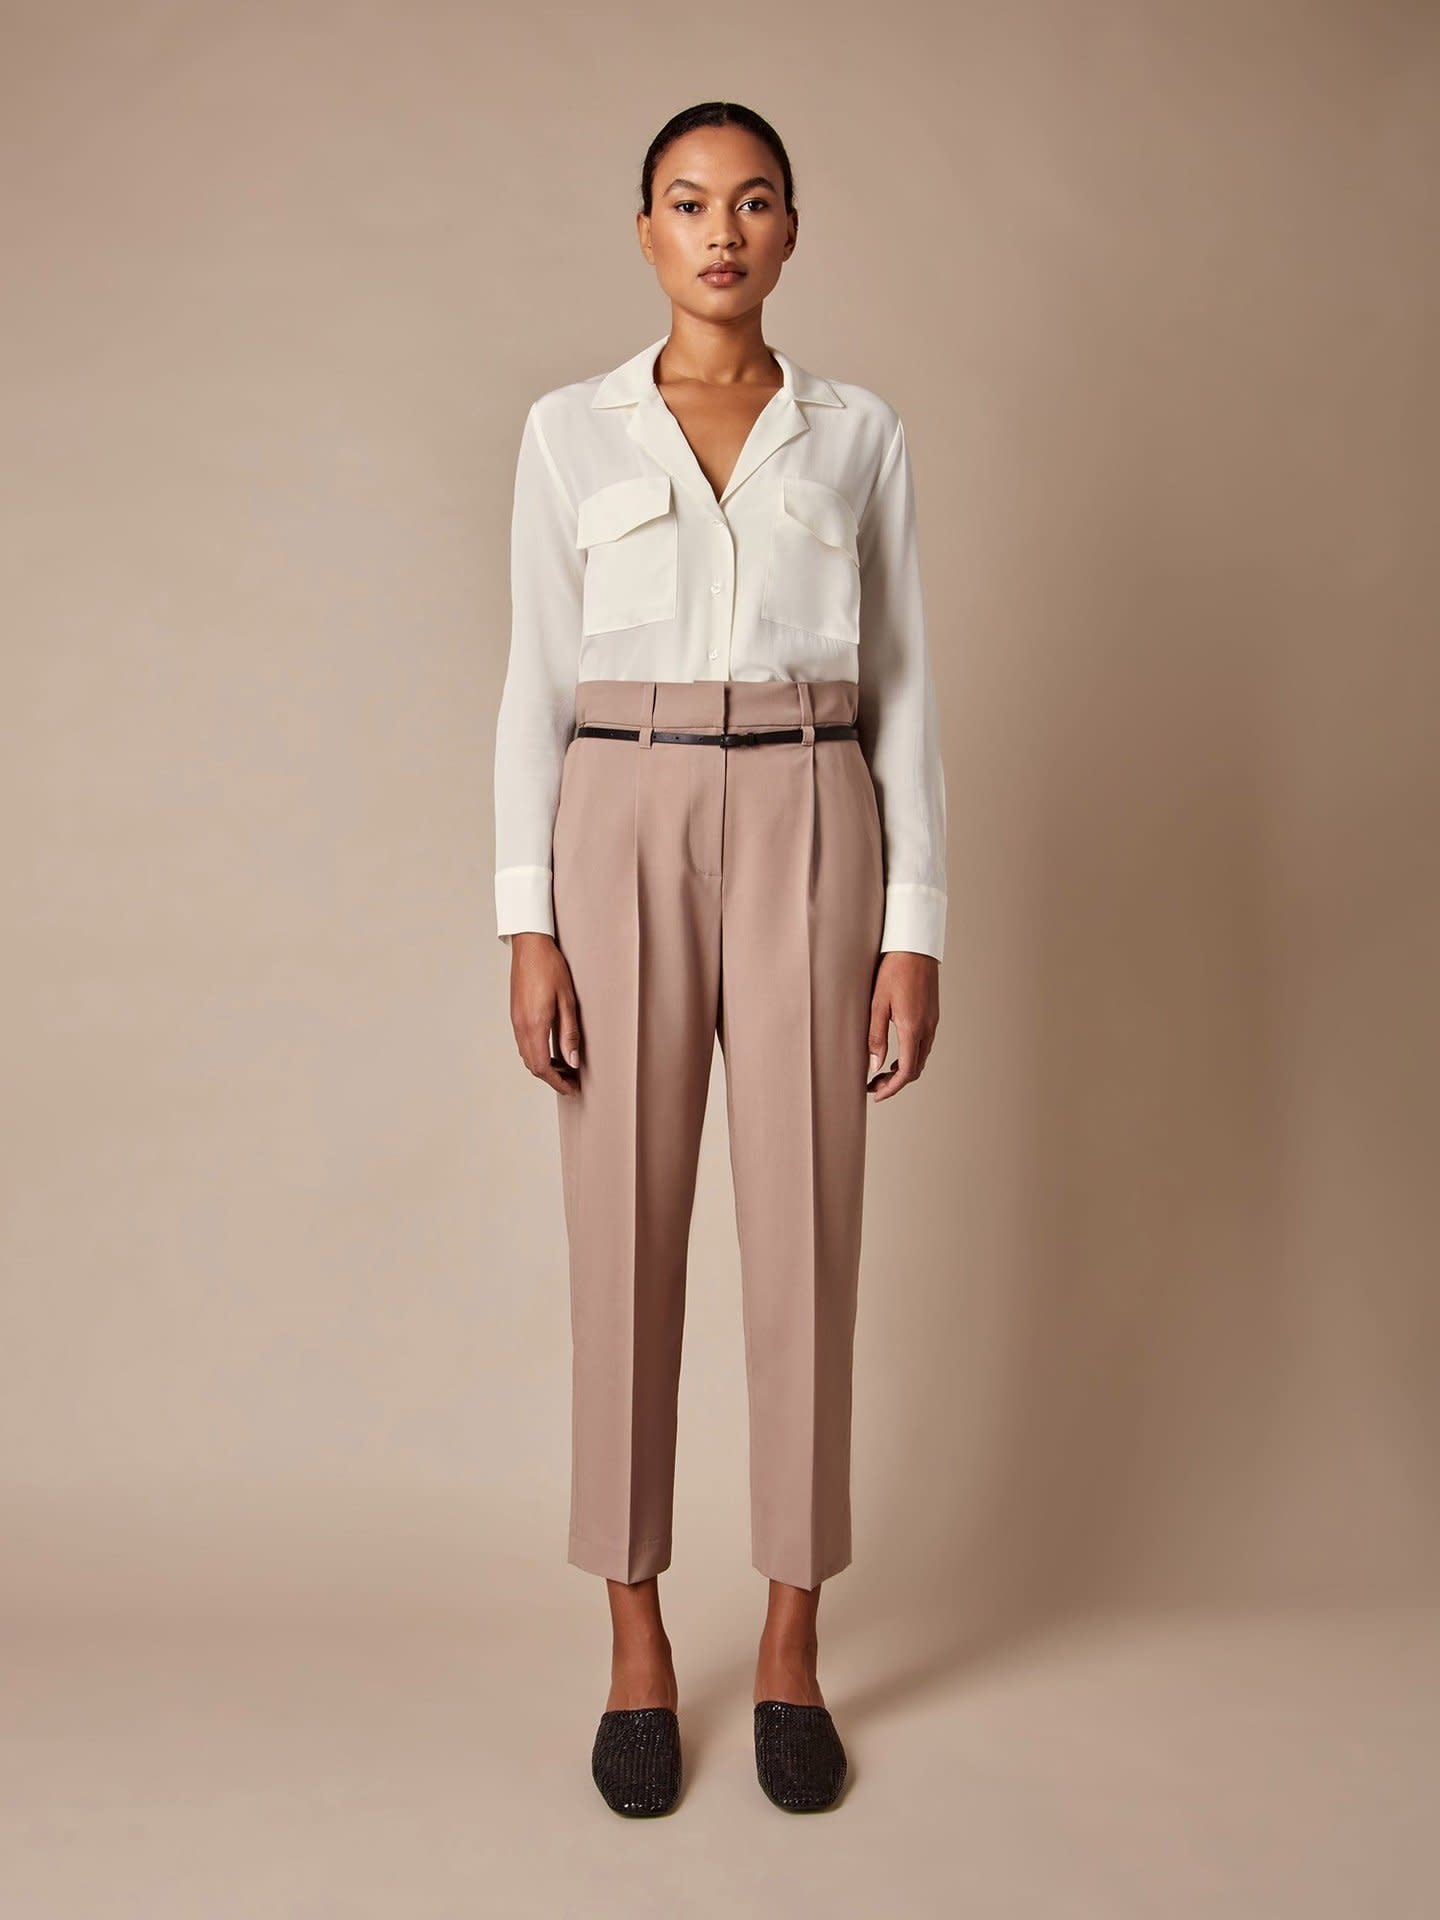 Judith & Charles Chartres Pant - Size 8